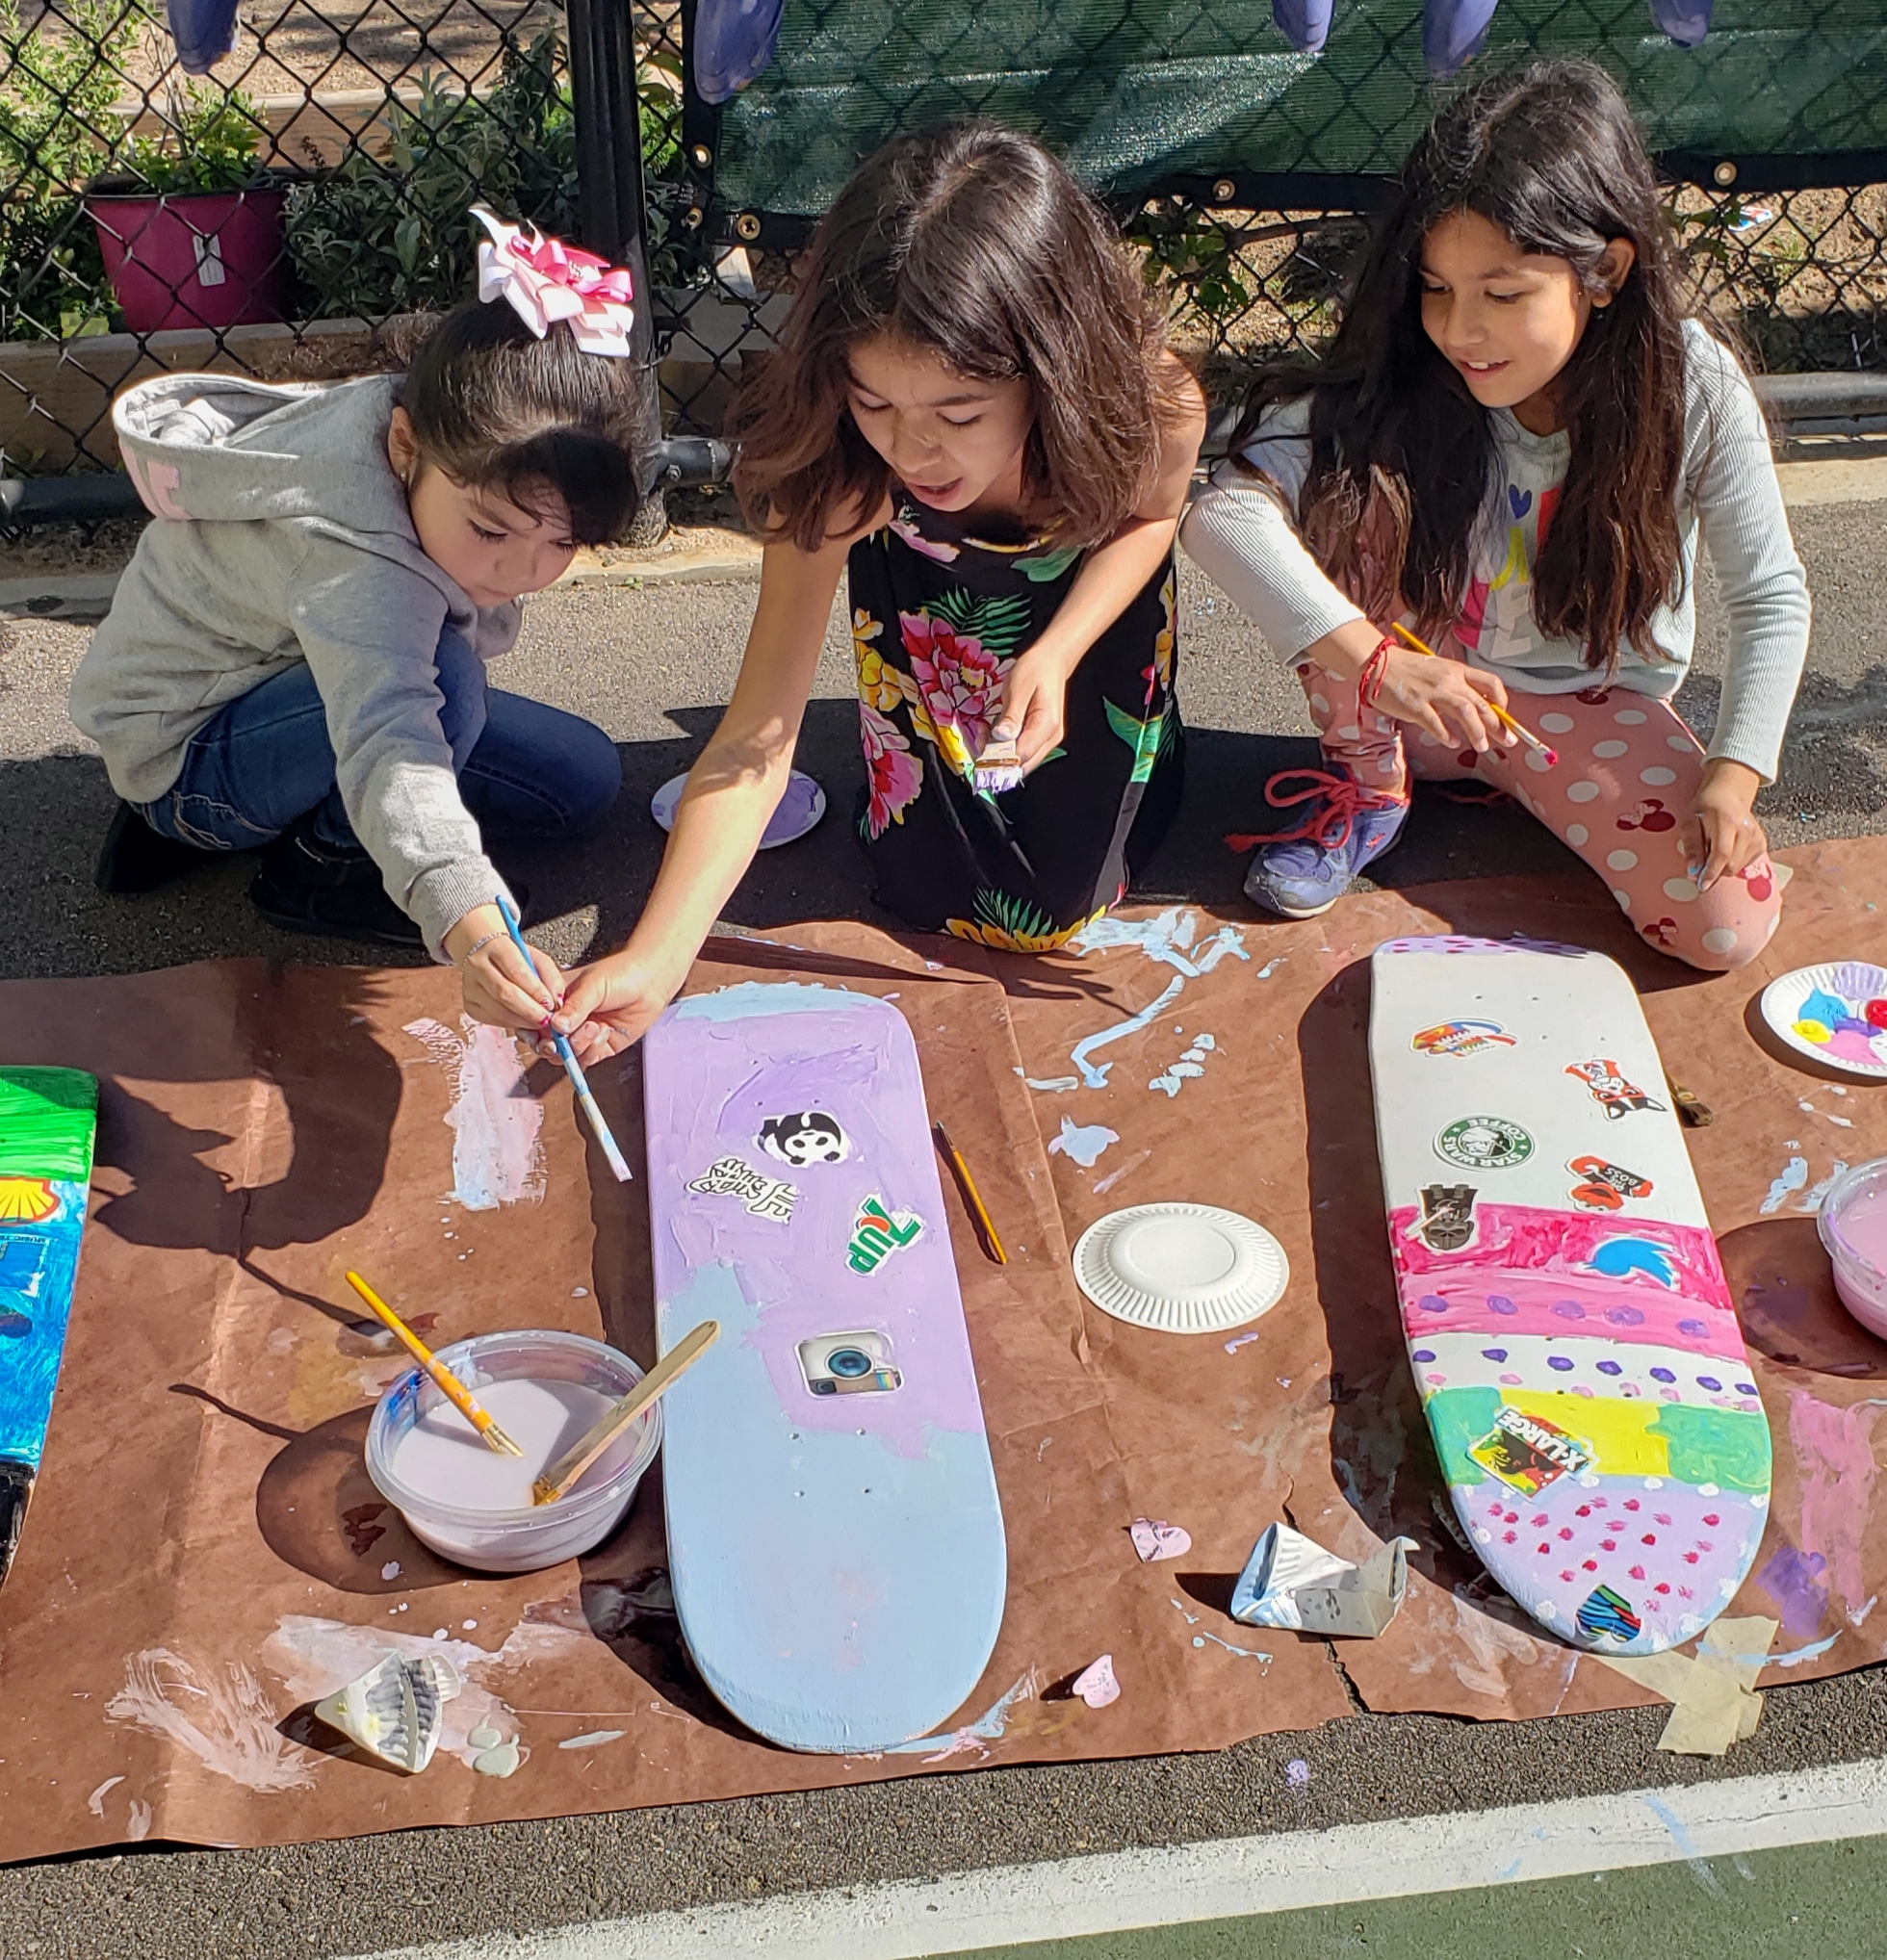 Monarch Art Project - April 2019Rebecca Bauer, our friend and artist in the community, helped our kids design and paint their own skateboard.